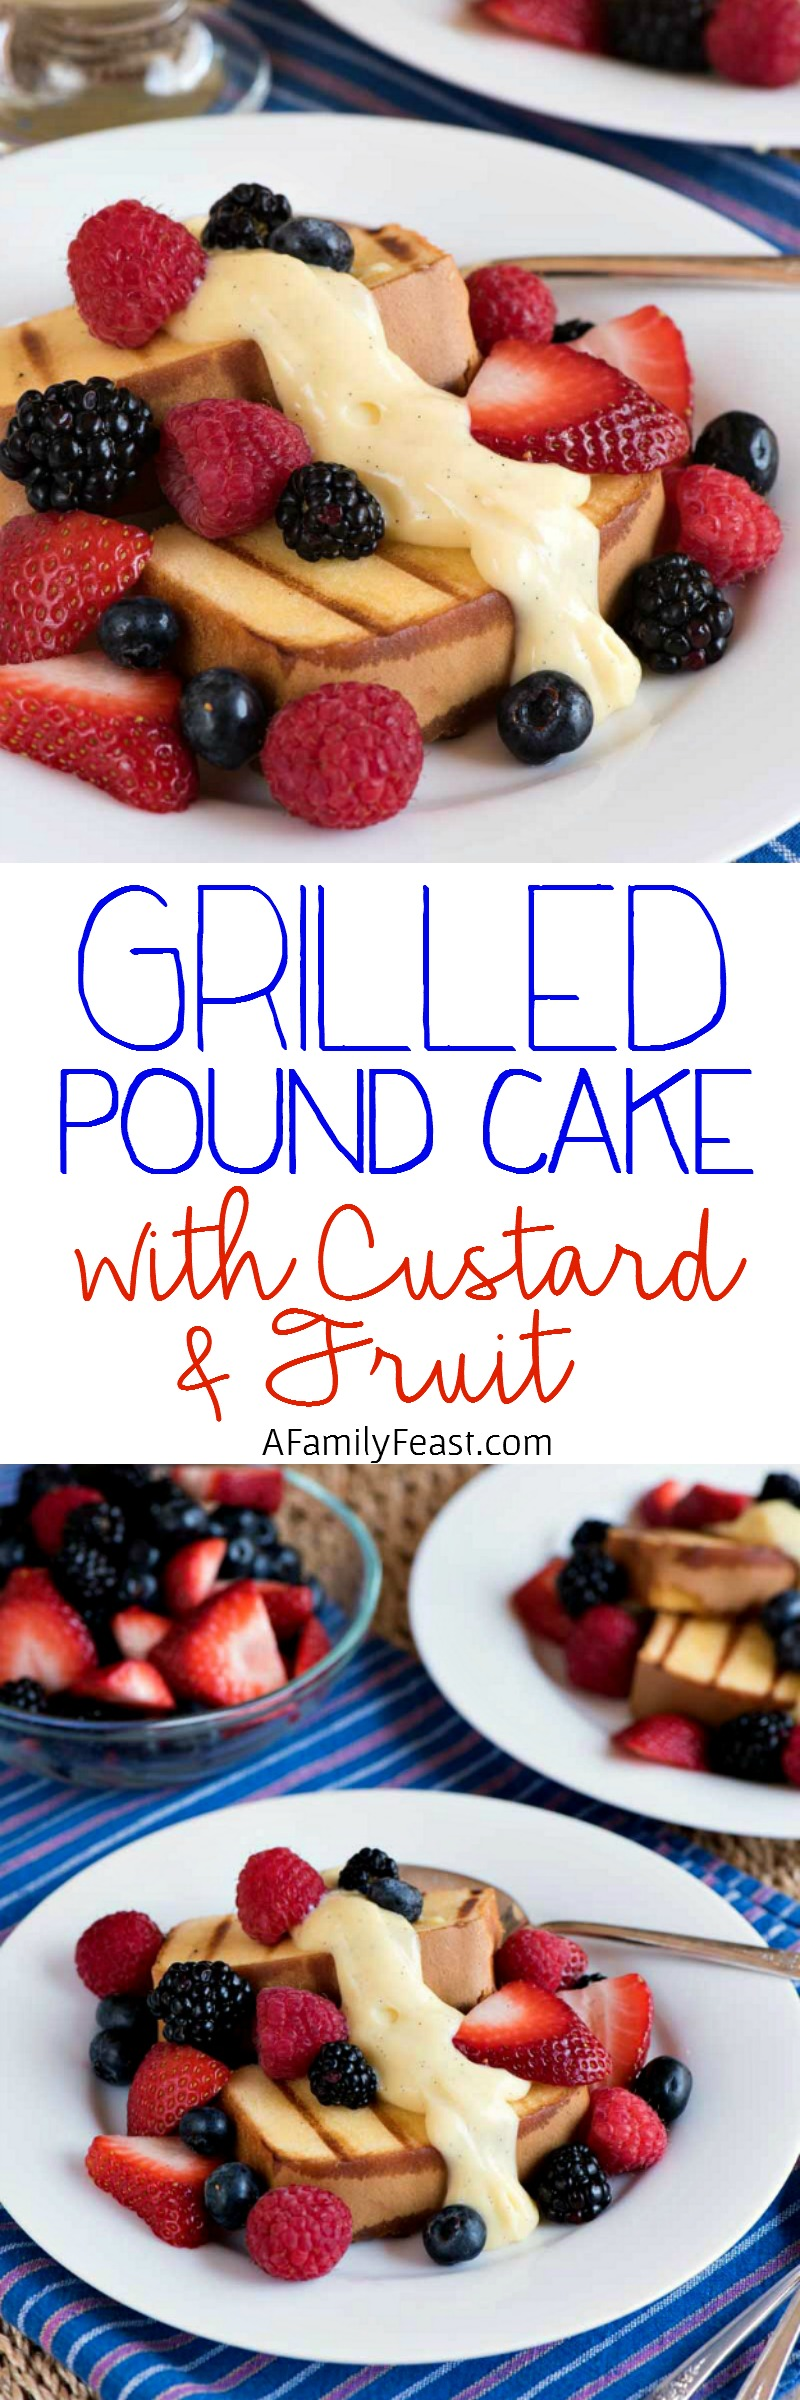 Grilled Pound Cake with Vanilla Custard and Fresh Berries - Make this simple summer dessert on your grill!